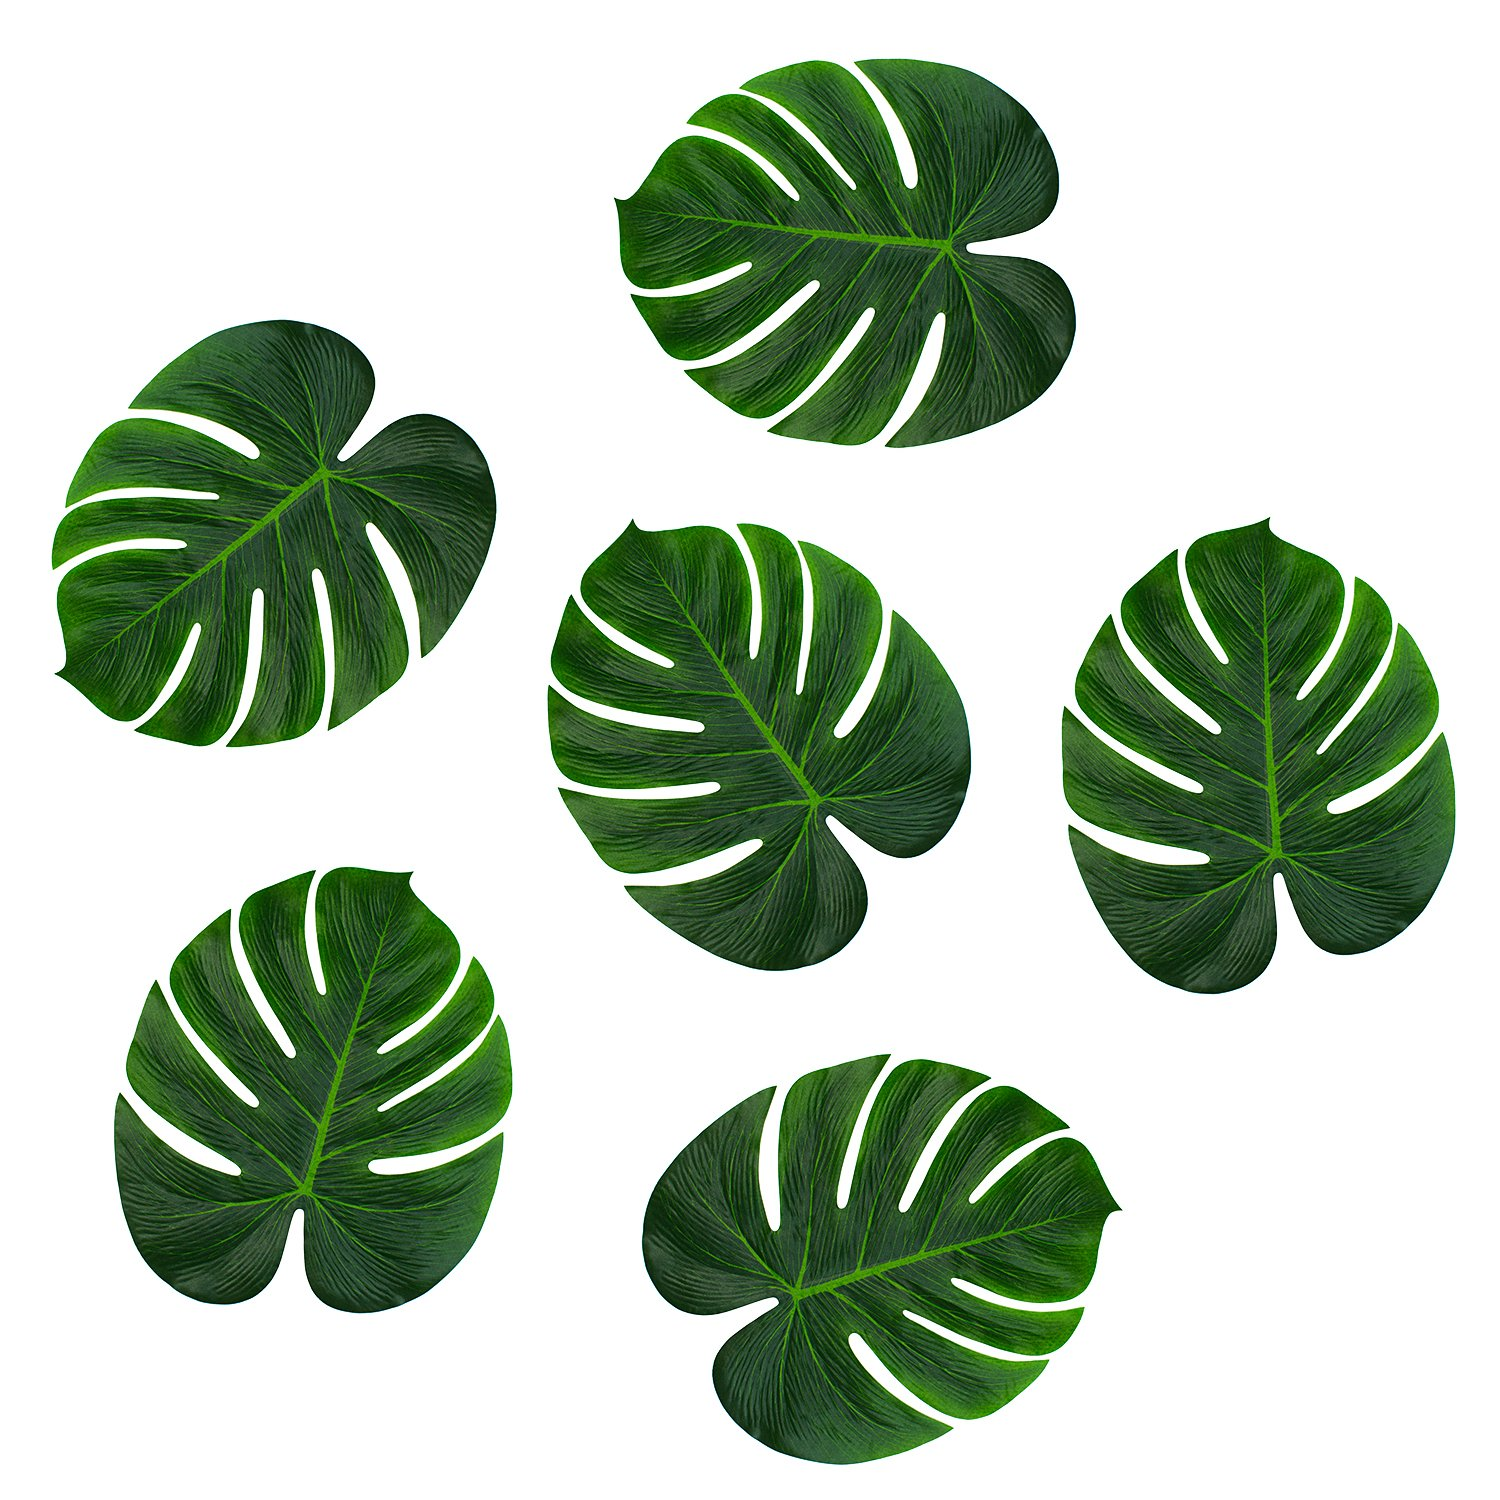 Amazon super z outlet tropical imitation green plant paper amazon super z outlet tropical imitation green plant paper leaves 13 hawaiian luau party jungle beach theme decorations for birthdays arts crafts izmirmasajfo